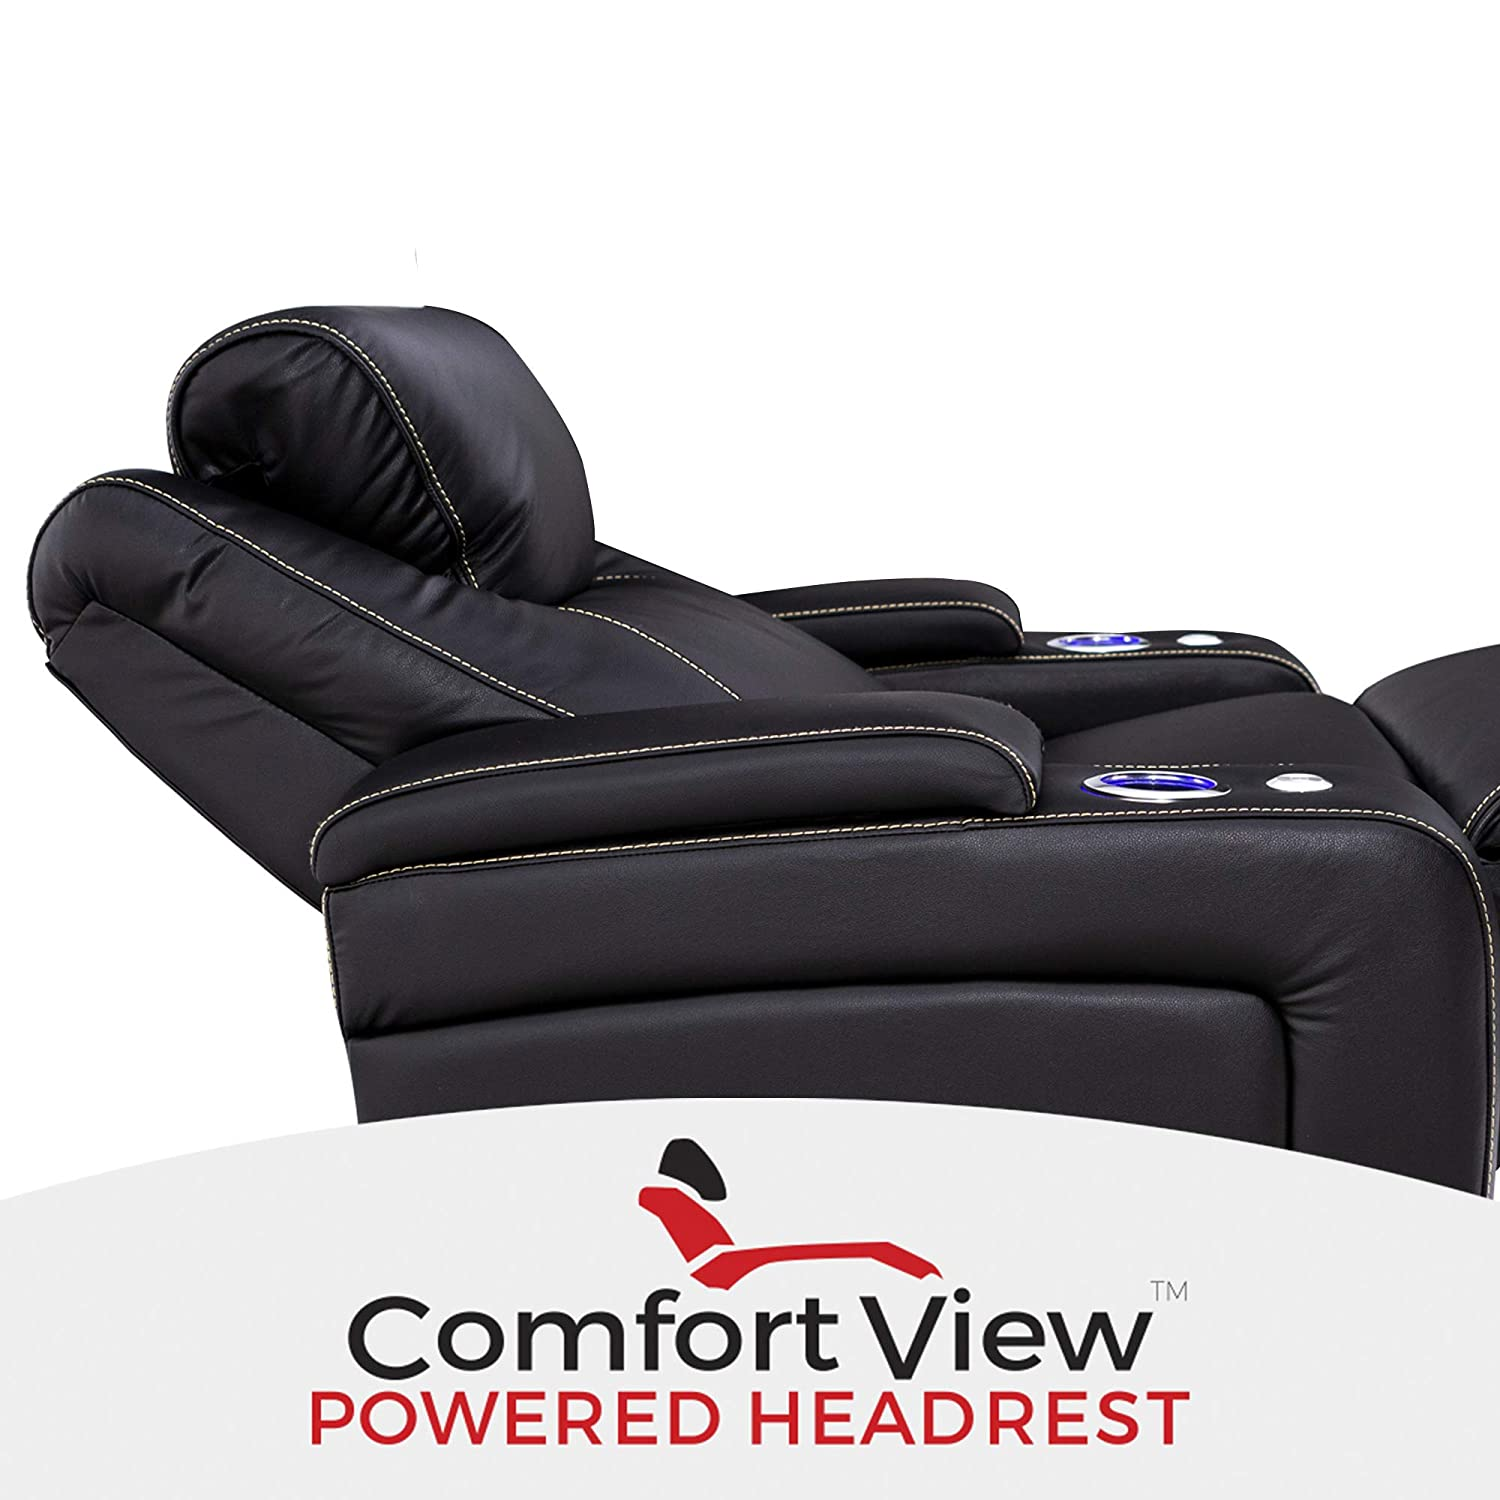 Seatcraft Pantheon Big /& Tall 400 lbs Capacity-Home Theater Seating Leather Recliner Powered Headrest-Adjustable Lumbar Support-SoundShaker-Lighted Cup Holders-Black